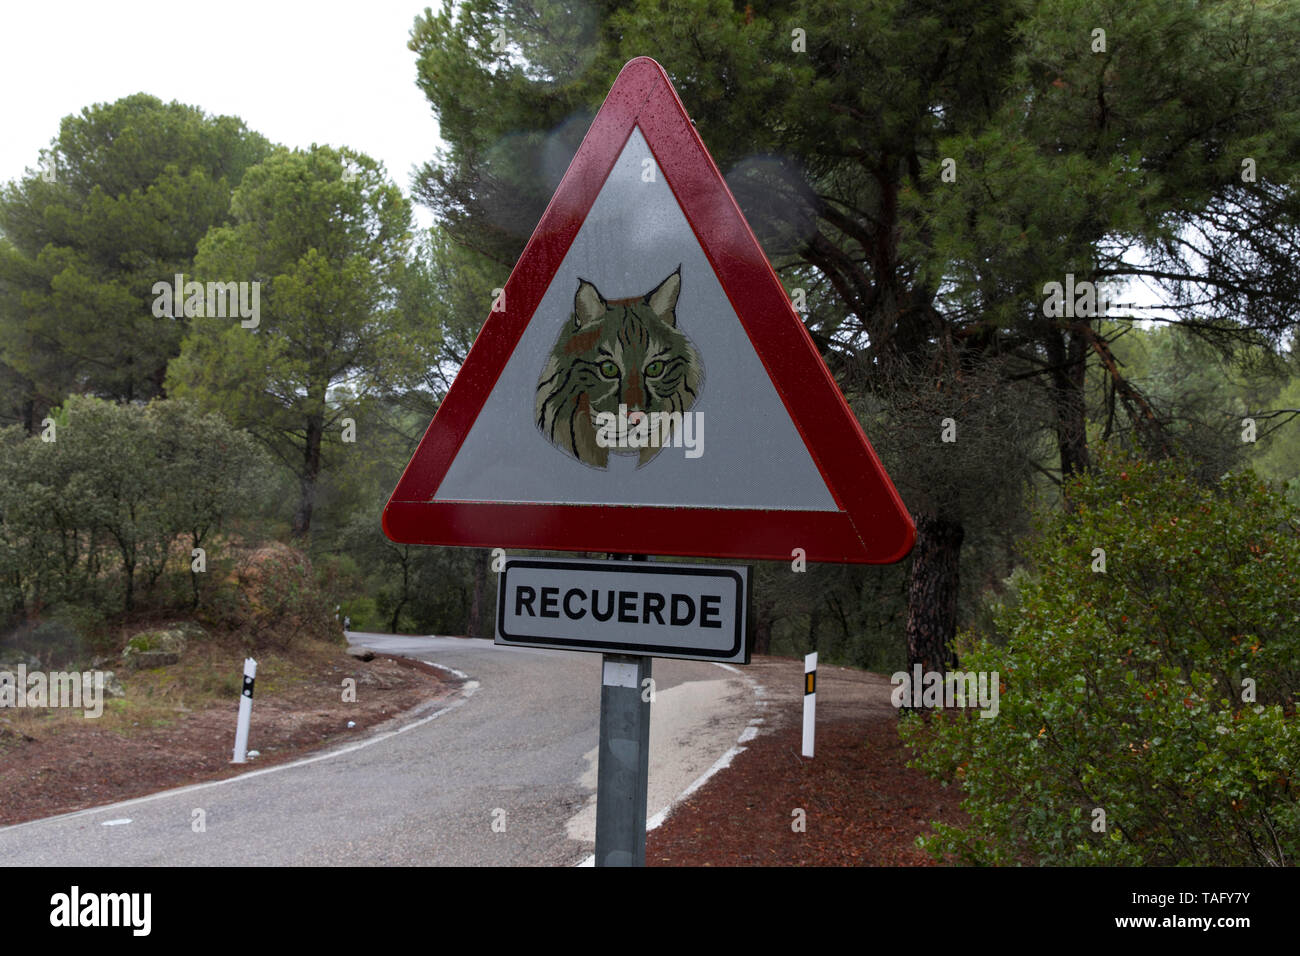 Traffic sign in the Spanish Lynx (Lynx pardinus) area, Andalusia Spain - Stock Image